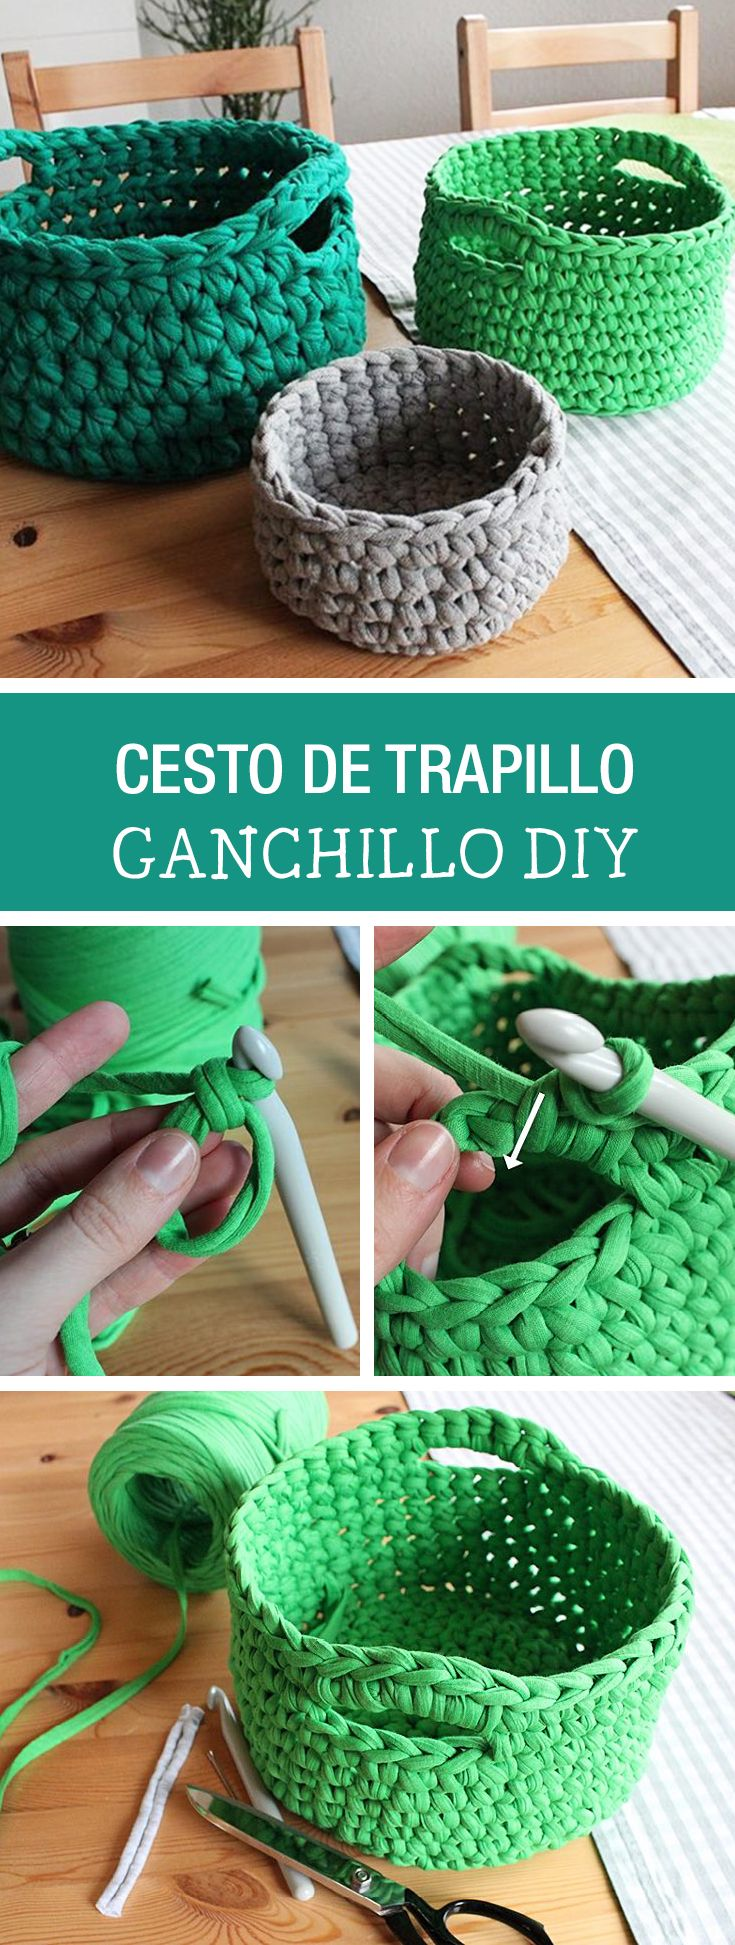 Tutoriales diy c mo hacer un cesto de trapillo v a for Tutoriales de trapillo